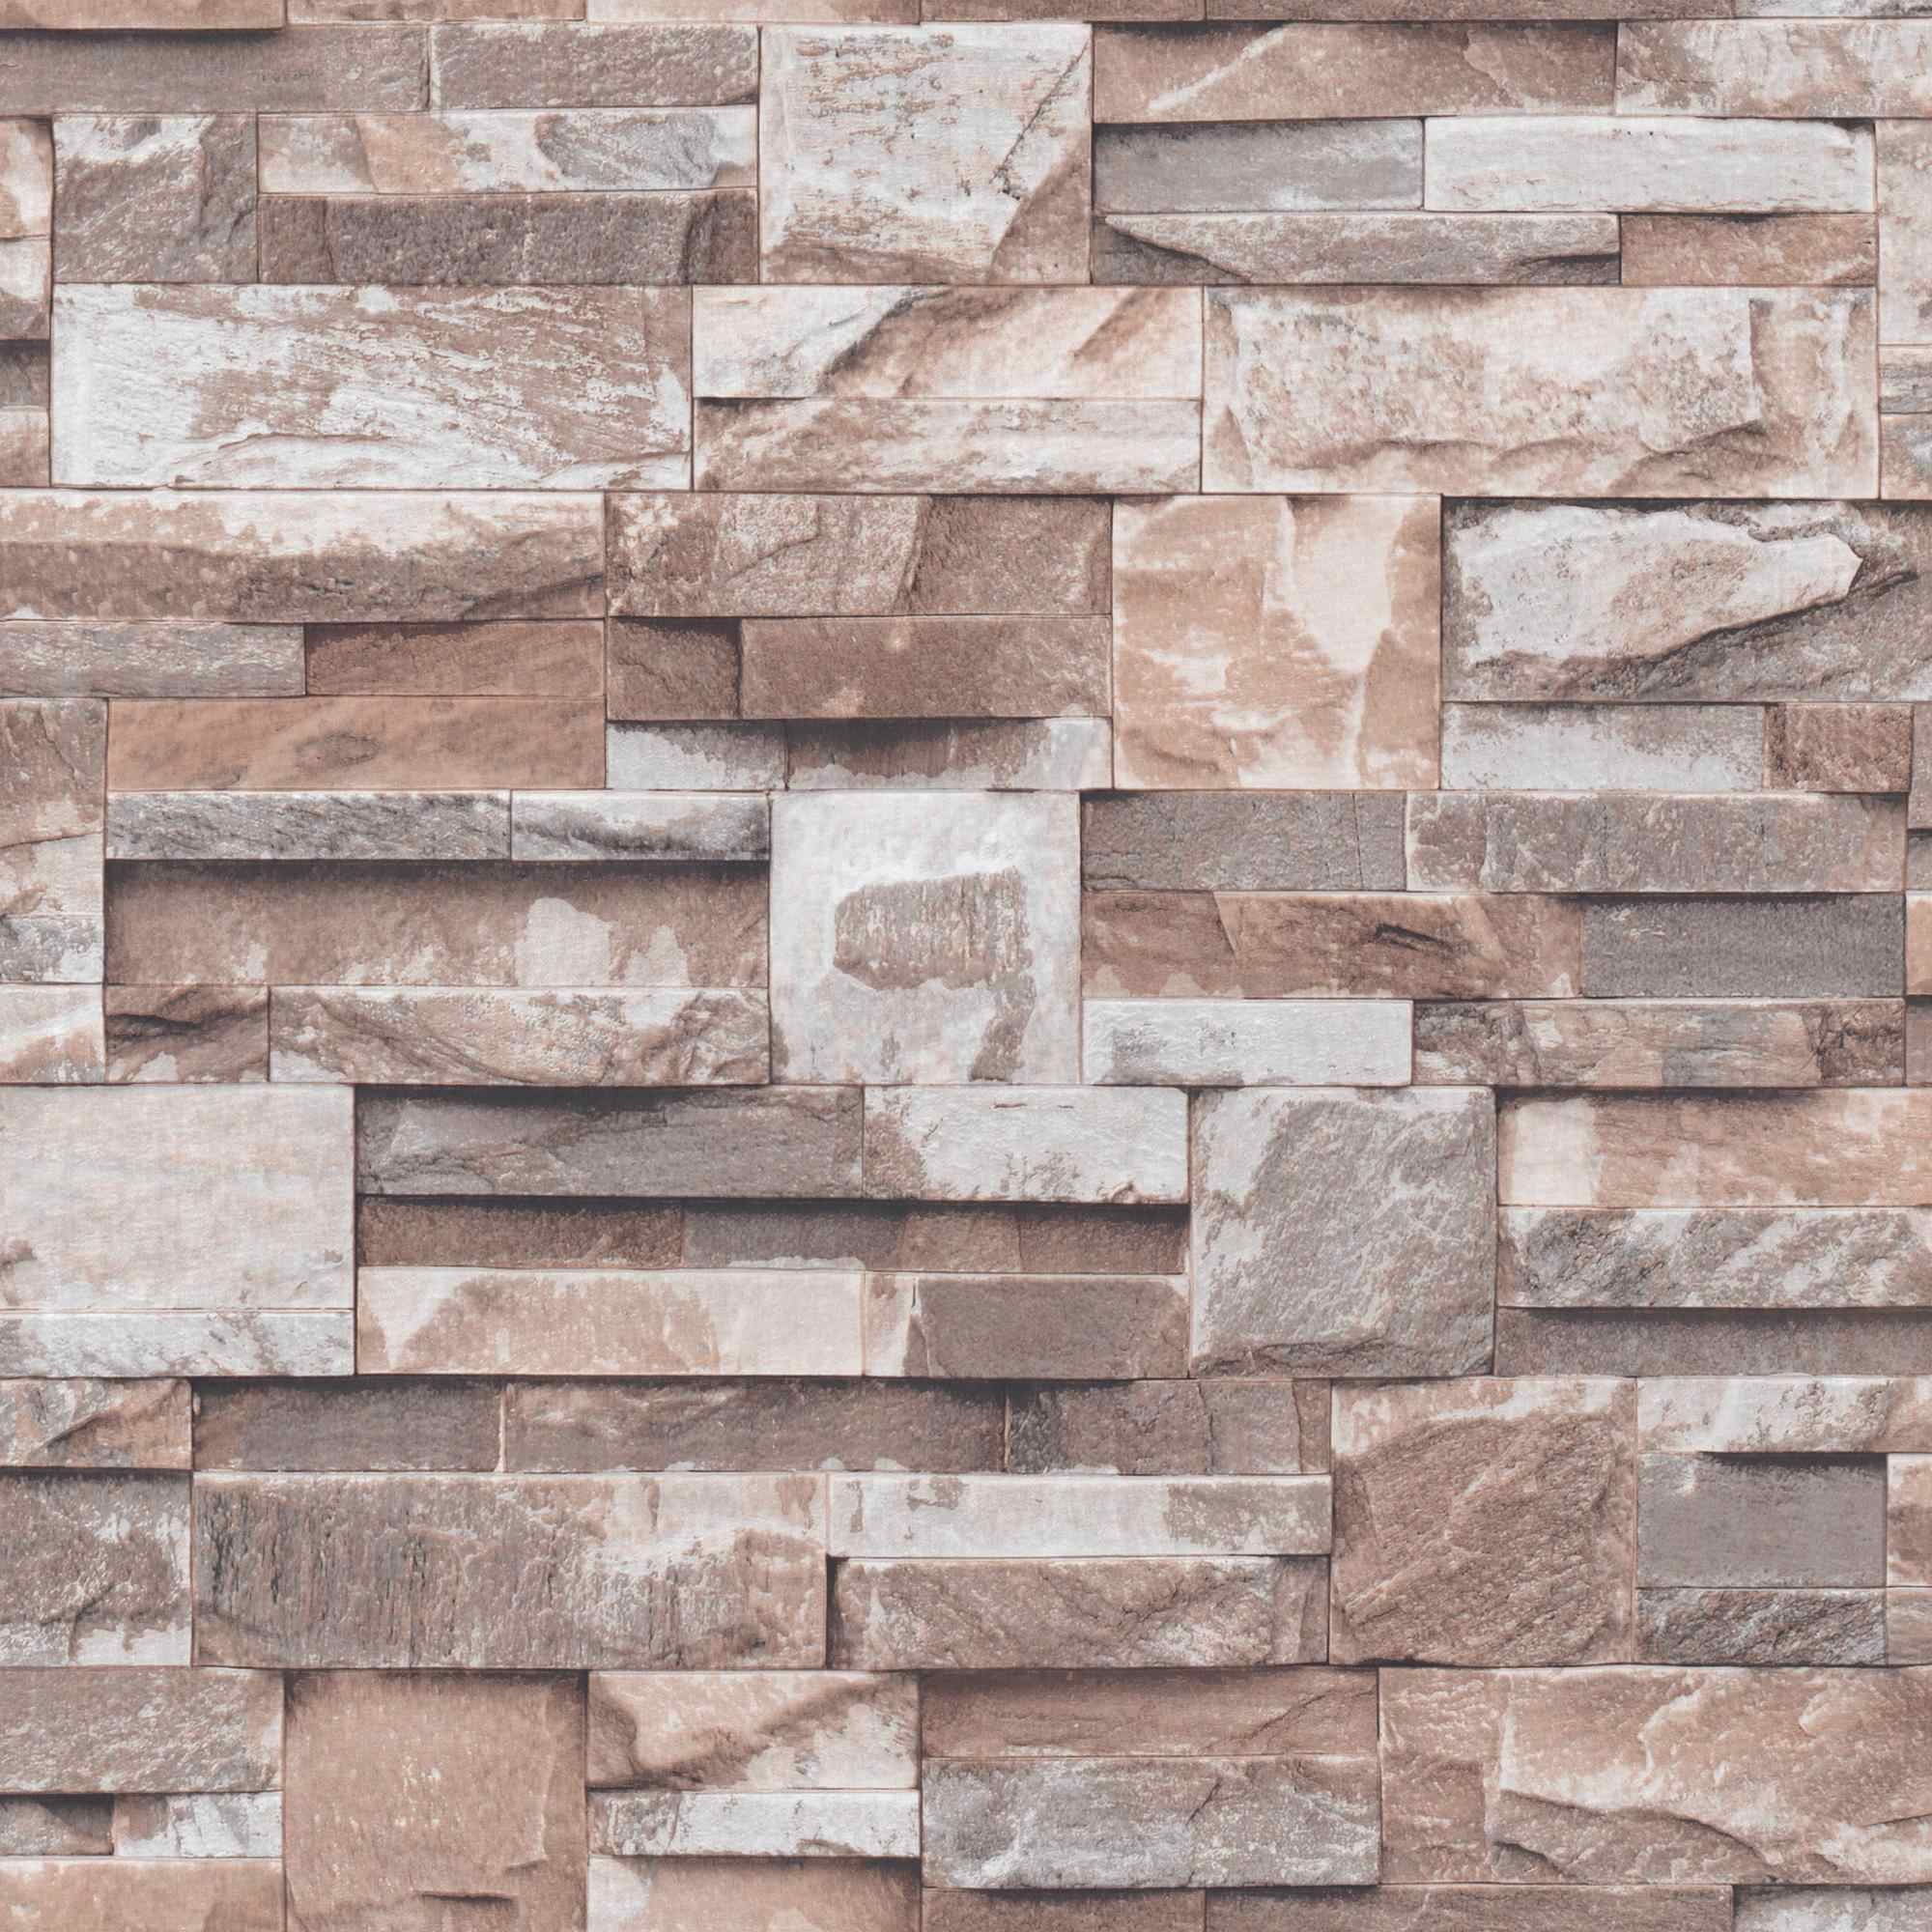 2000x2000 Vinyl 3D Stone Wall Paper Roll Brick Wall Wallpaper for Living Room,  Dinning Room,